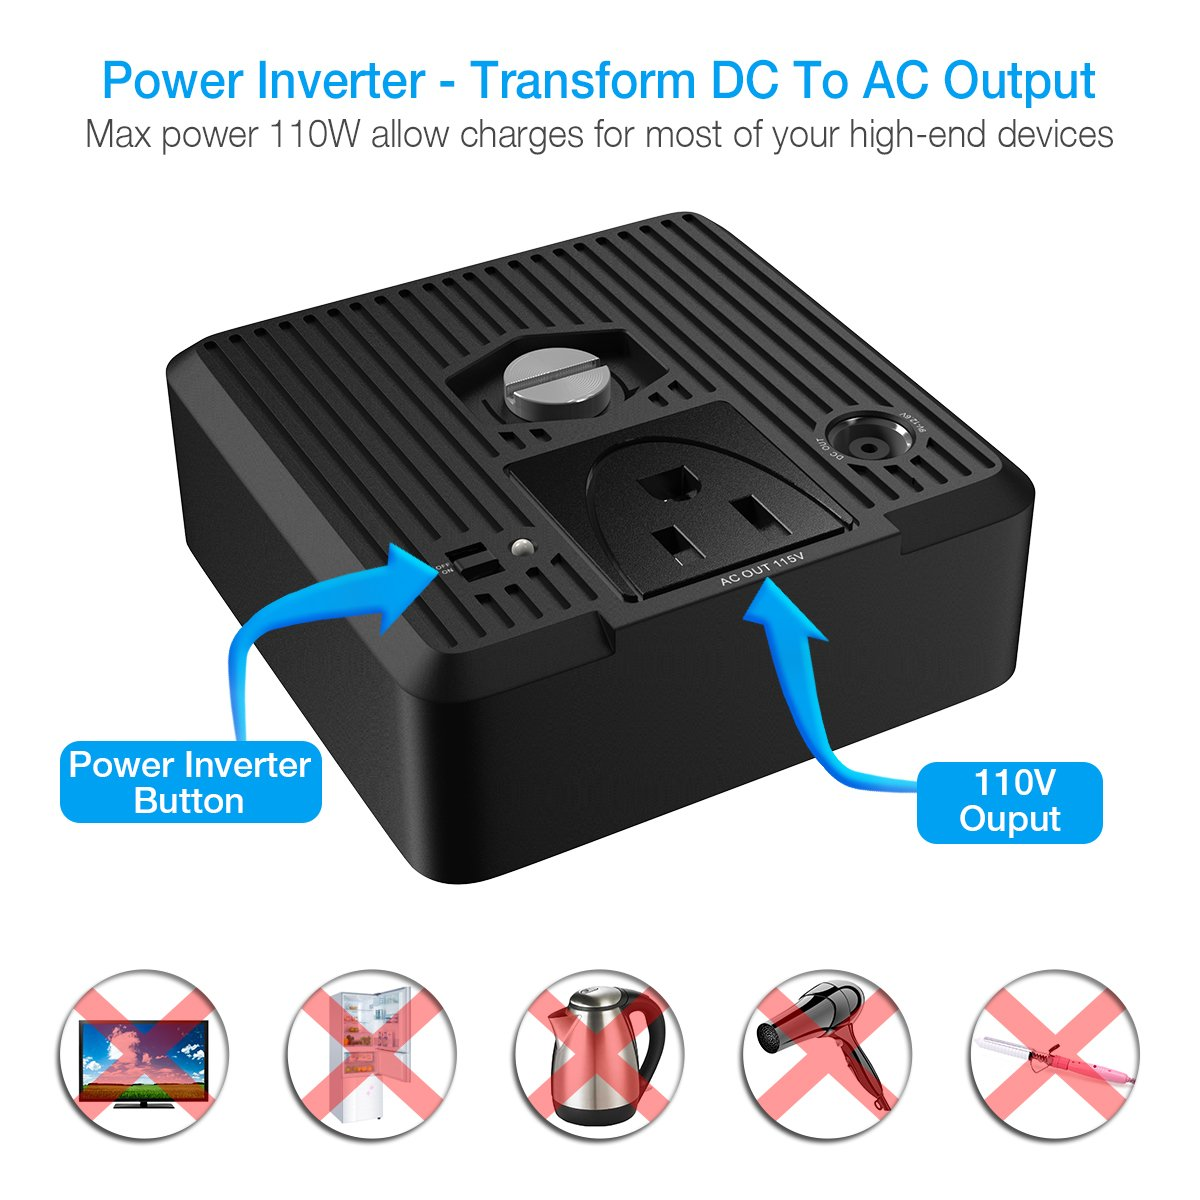 Poweradd Chargercenter Compact 185wh 50000mah Portable Download Image Ac Dc Converter 12v To 110v Circuit Pc Android Iphone Generator Power Source 5v 19v With Inverter 115v 100w For